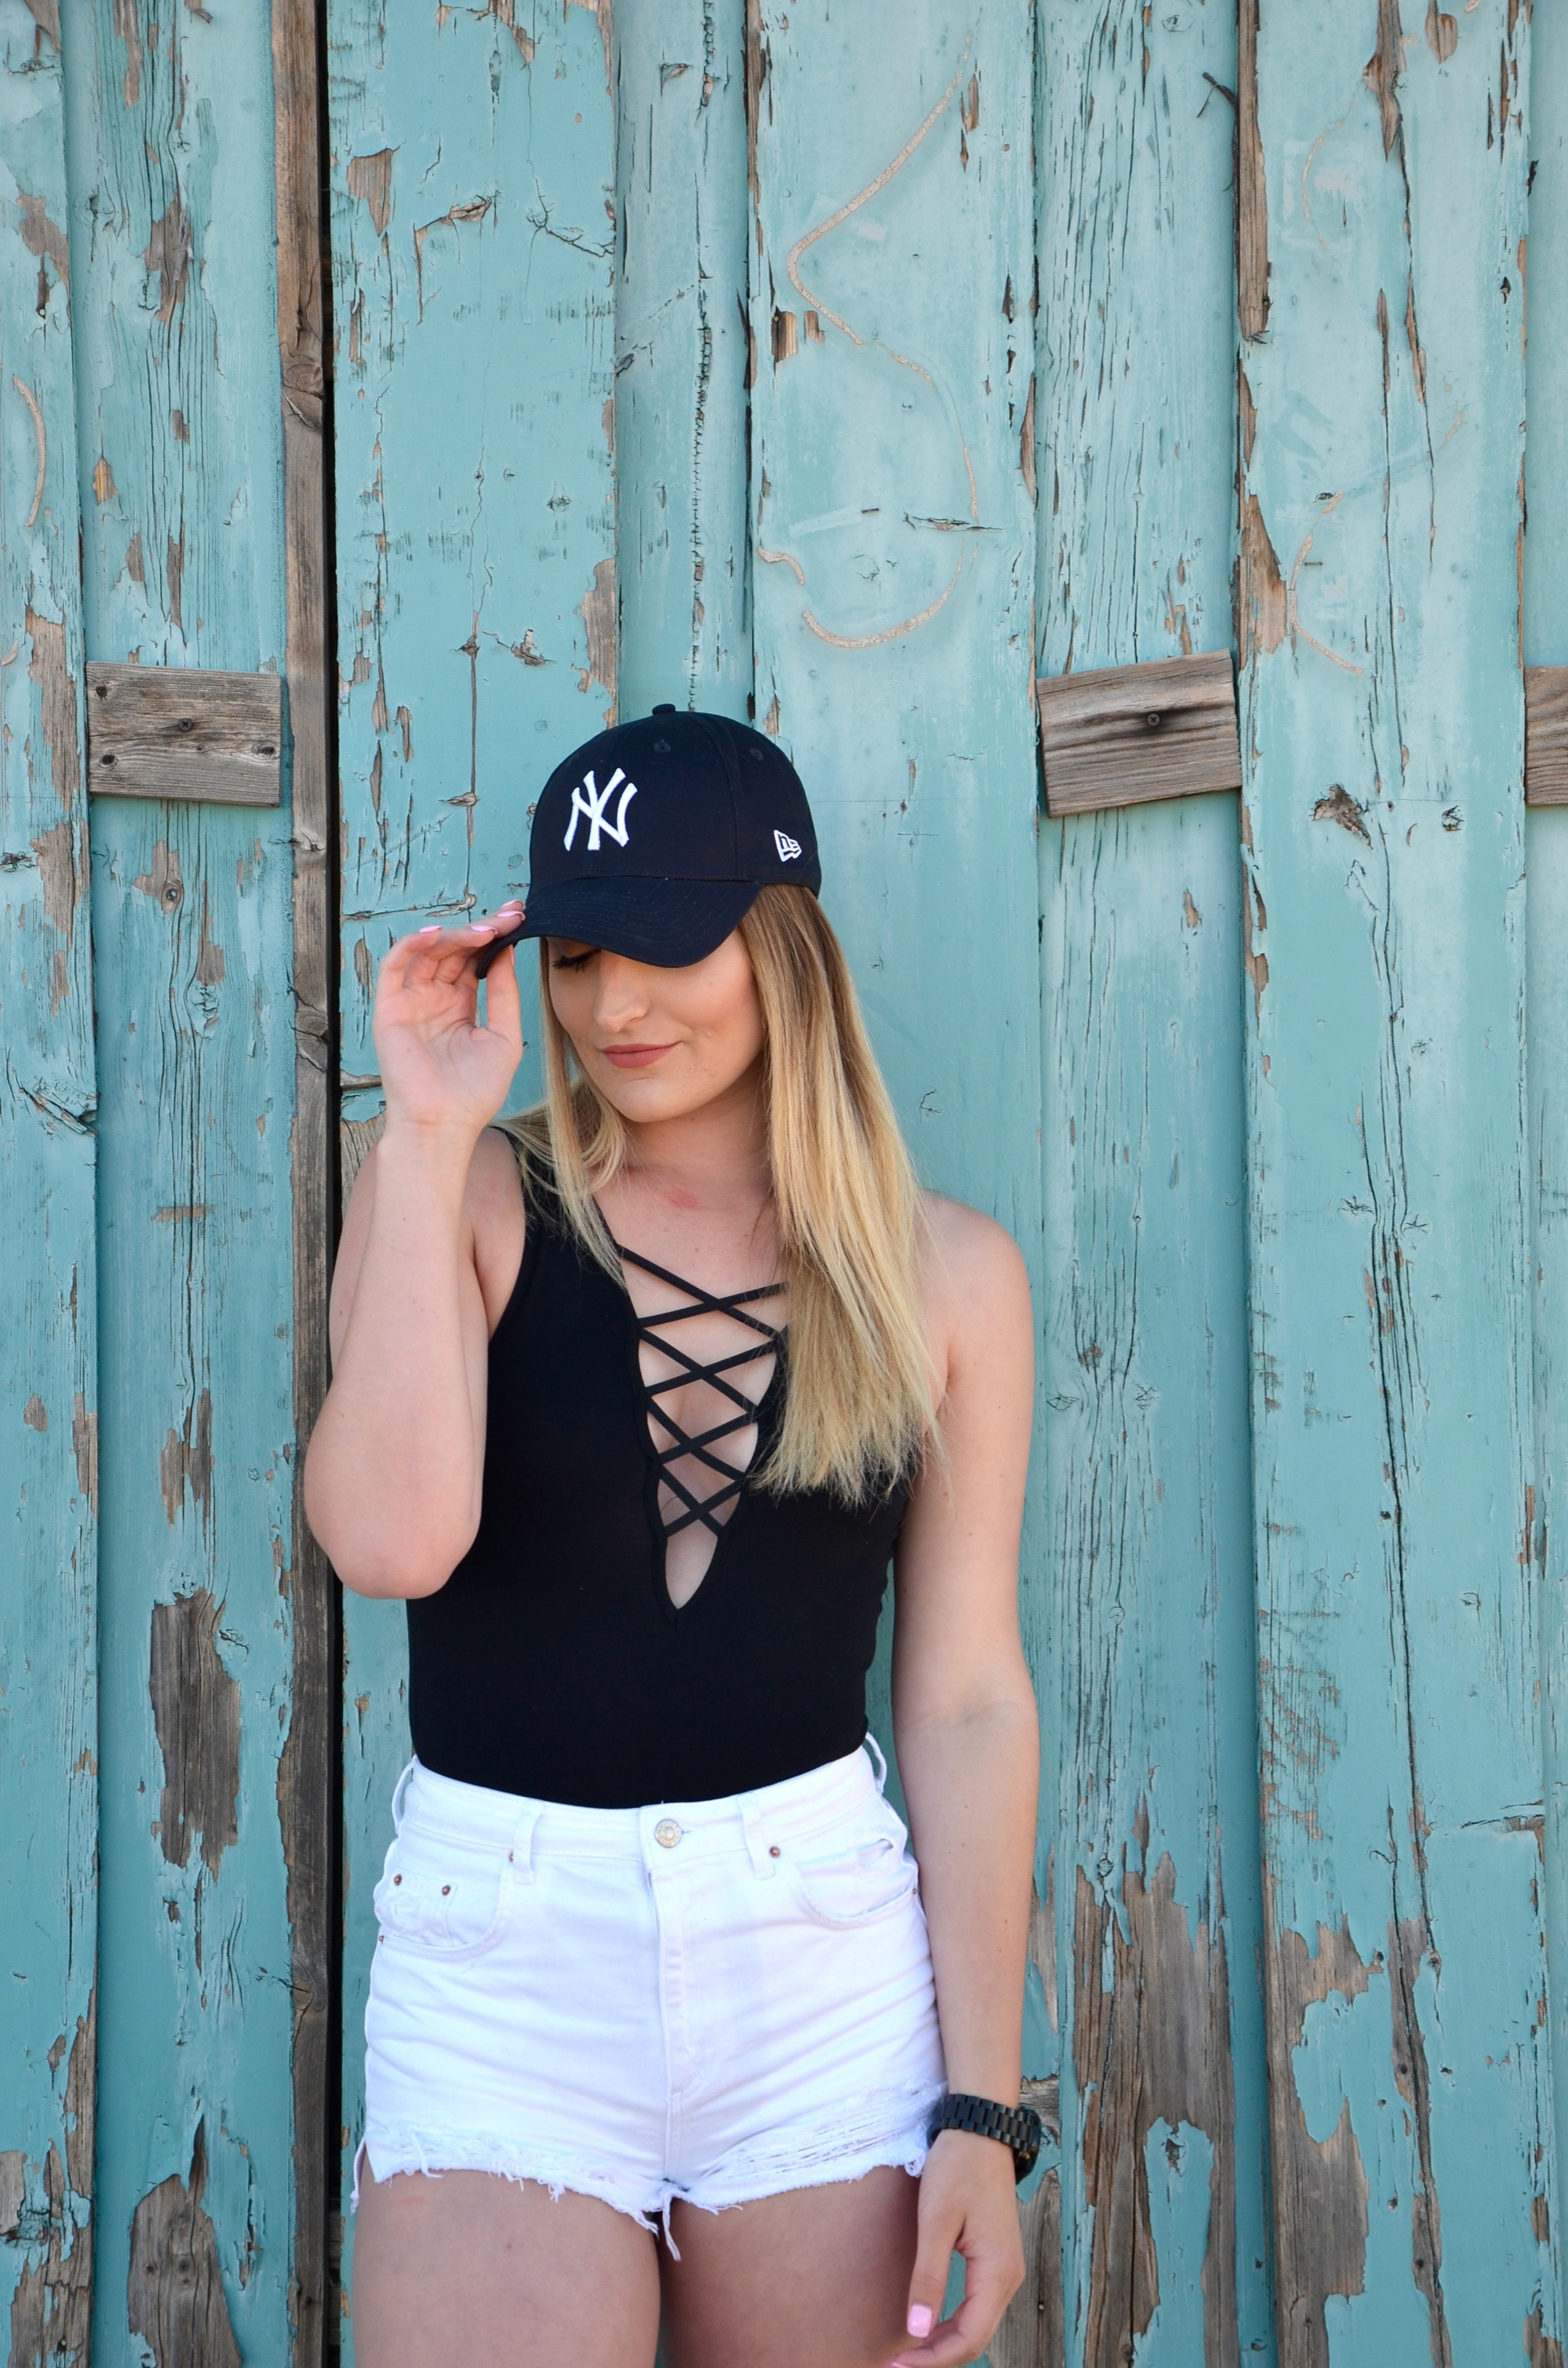 easy going ootd for a day of travel - Travel Outfit Of The Day by popular Texas style blogger Audrey Madison Stowe